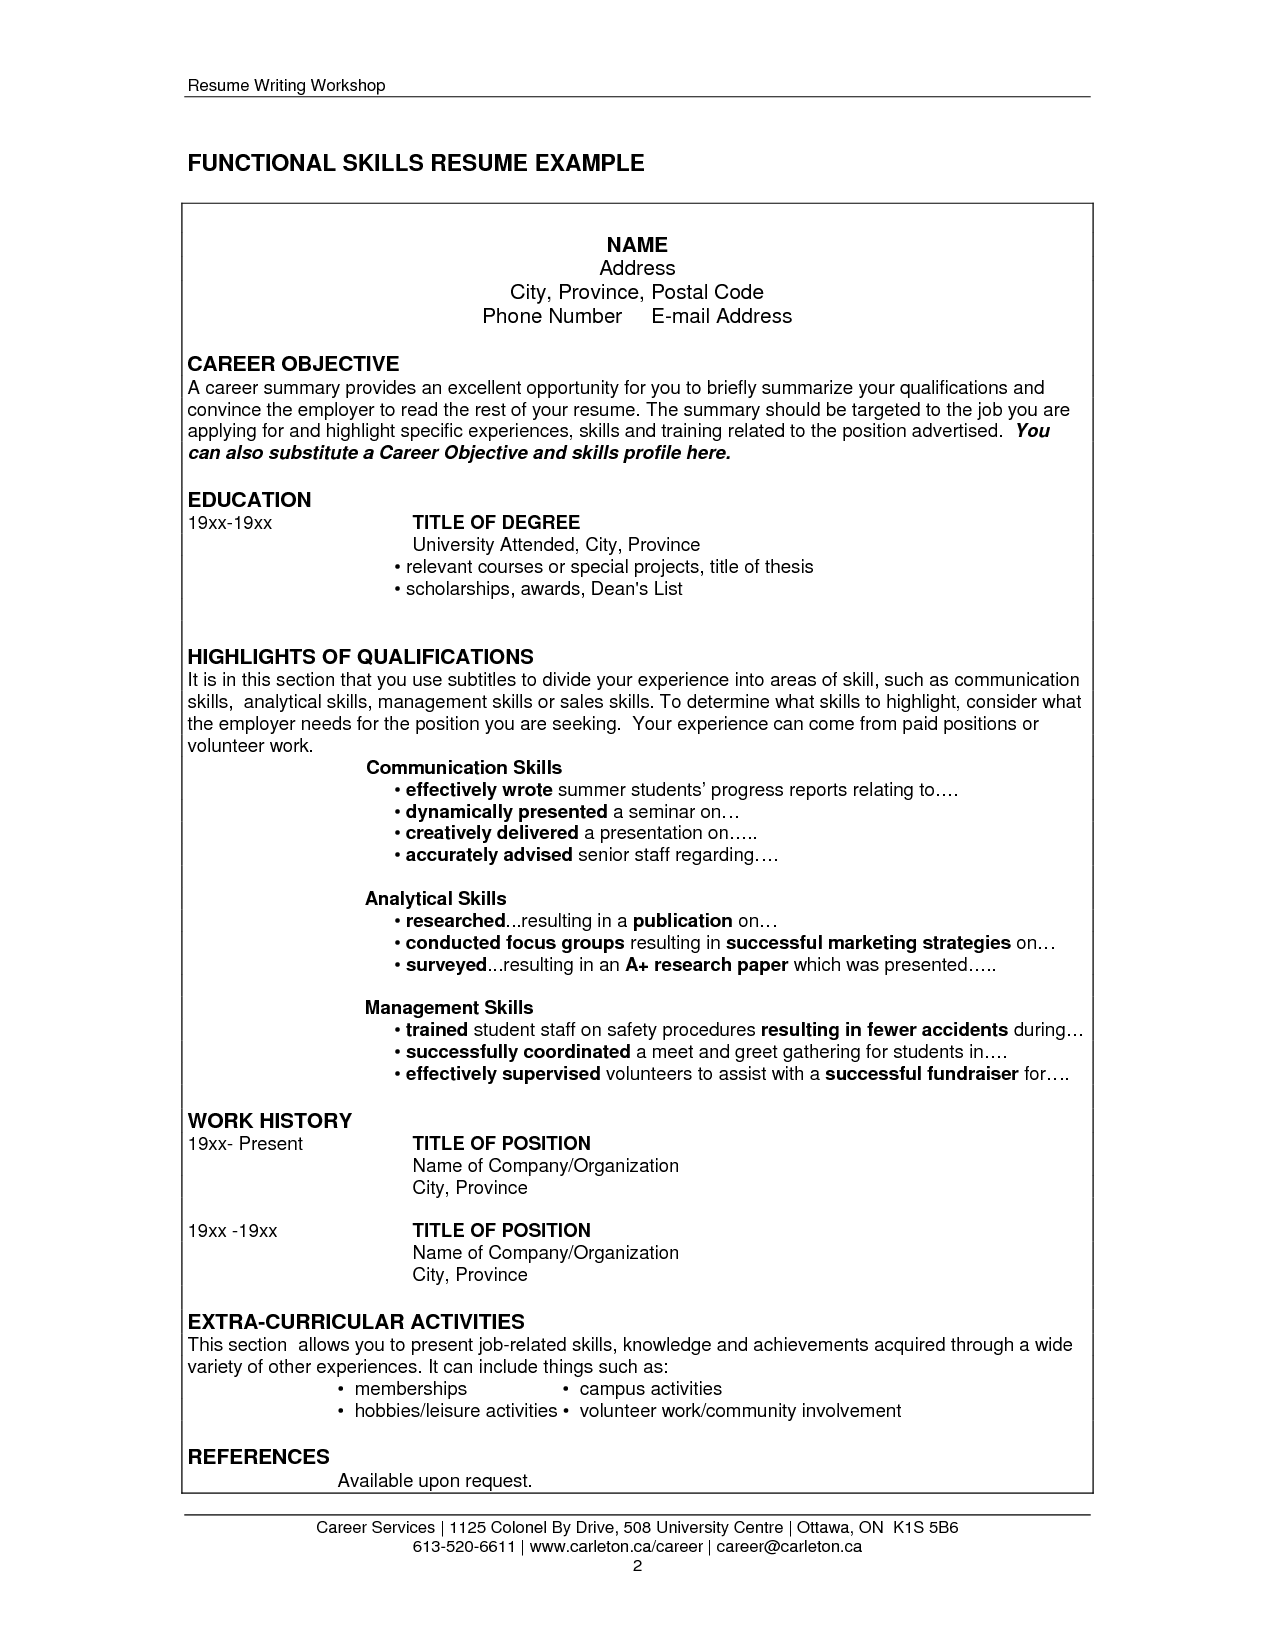 Skills Resume Templates Pinterest Sample Resume Resume And